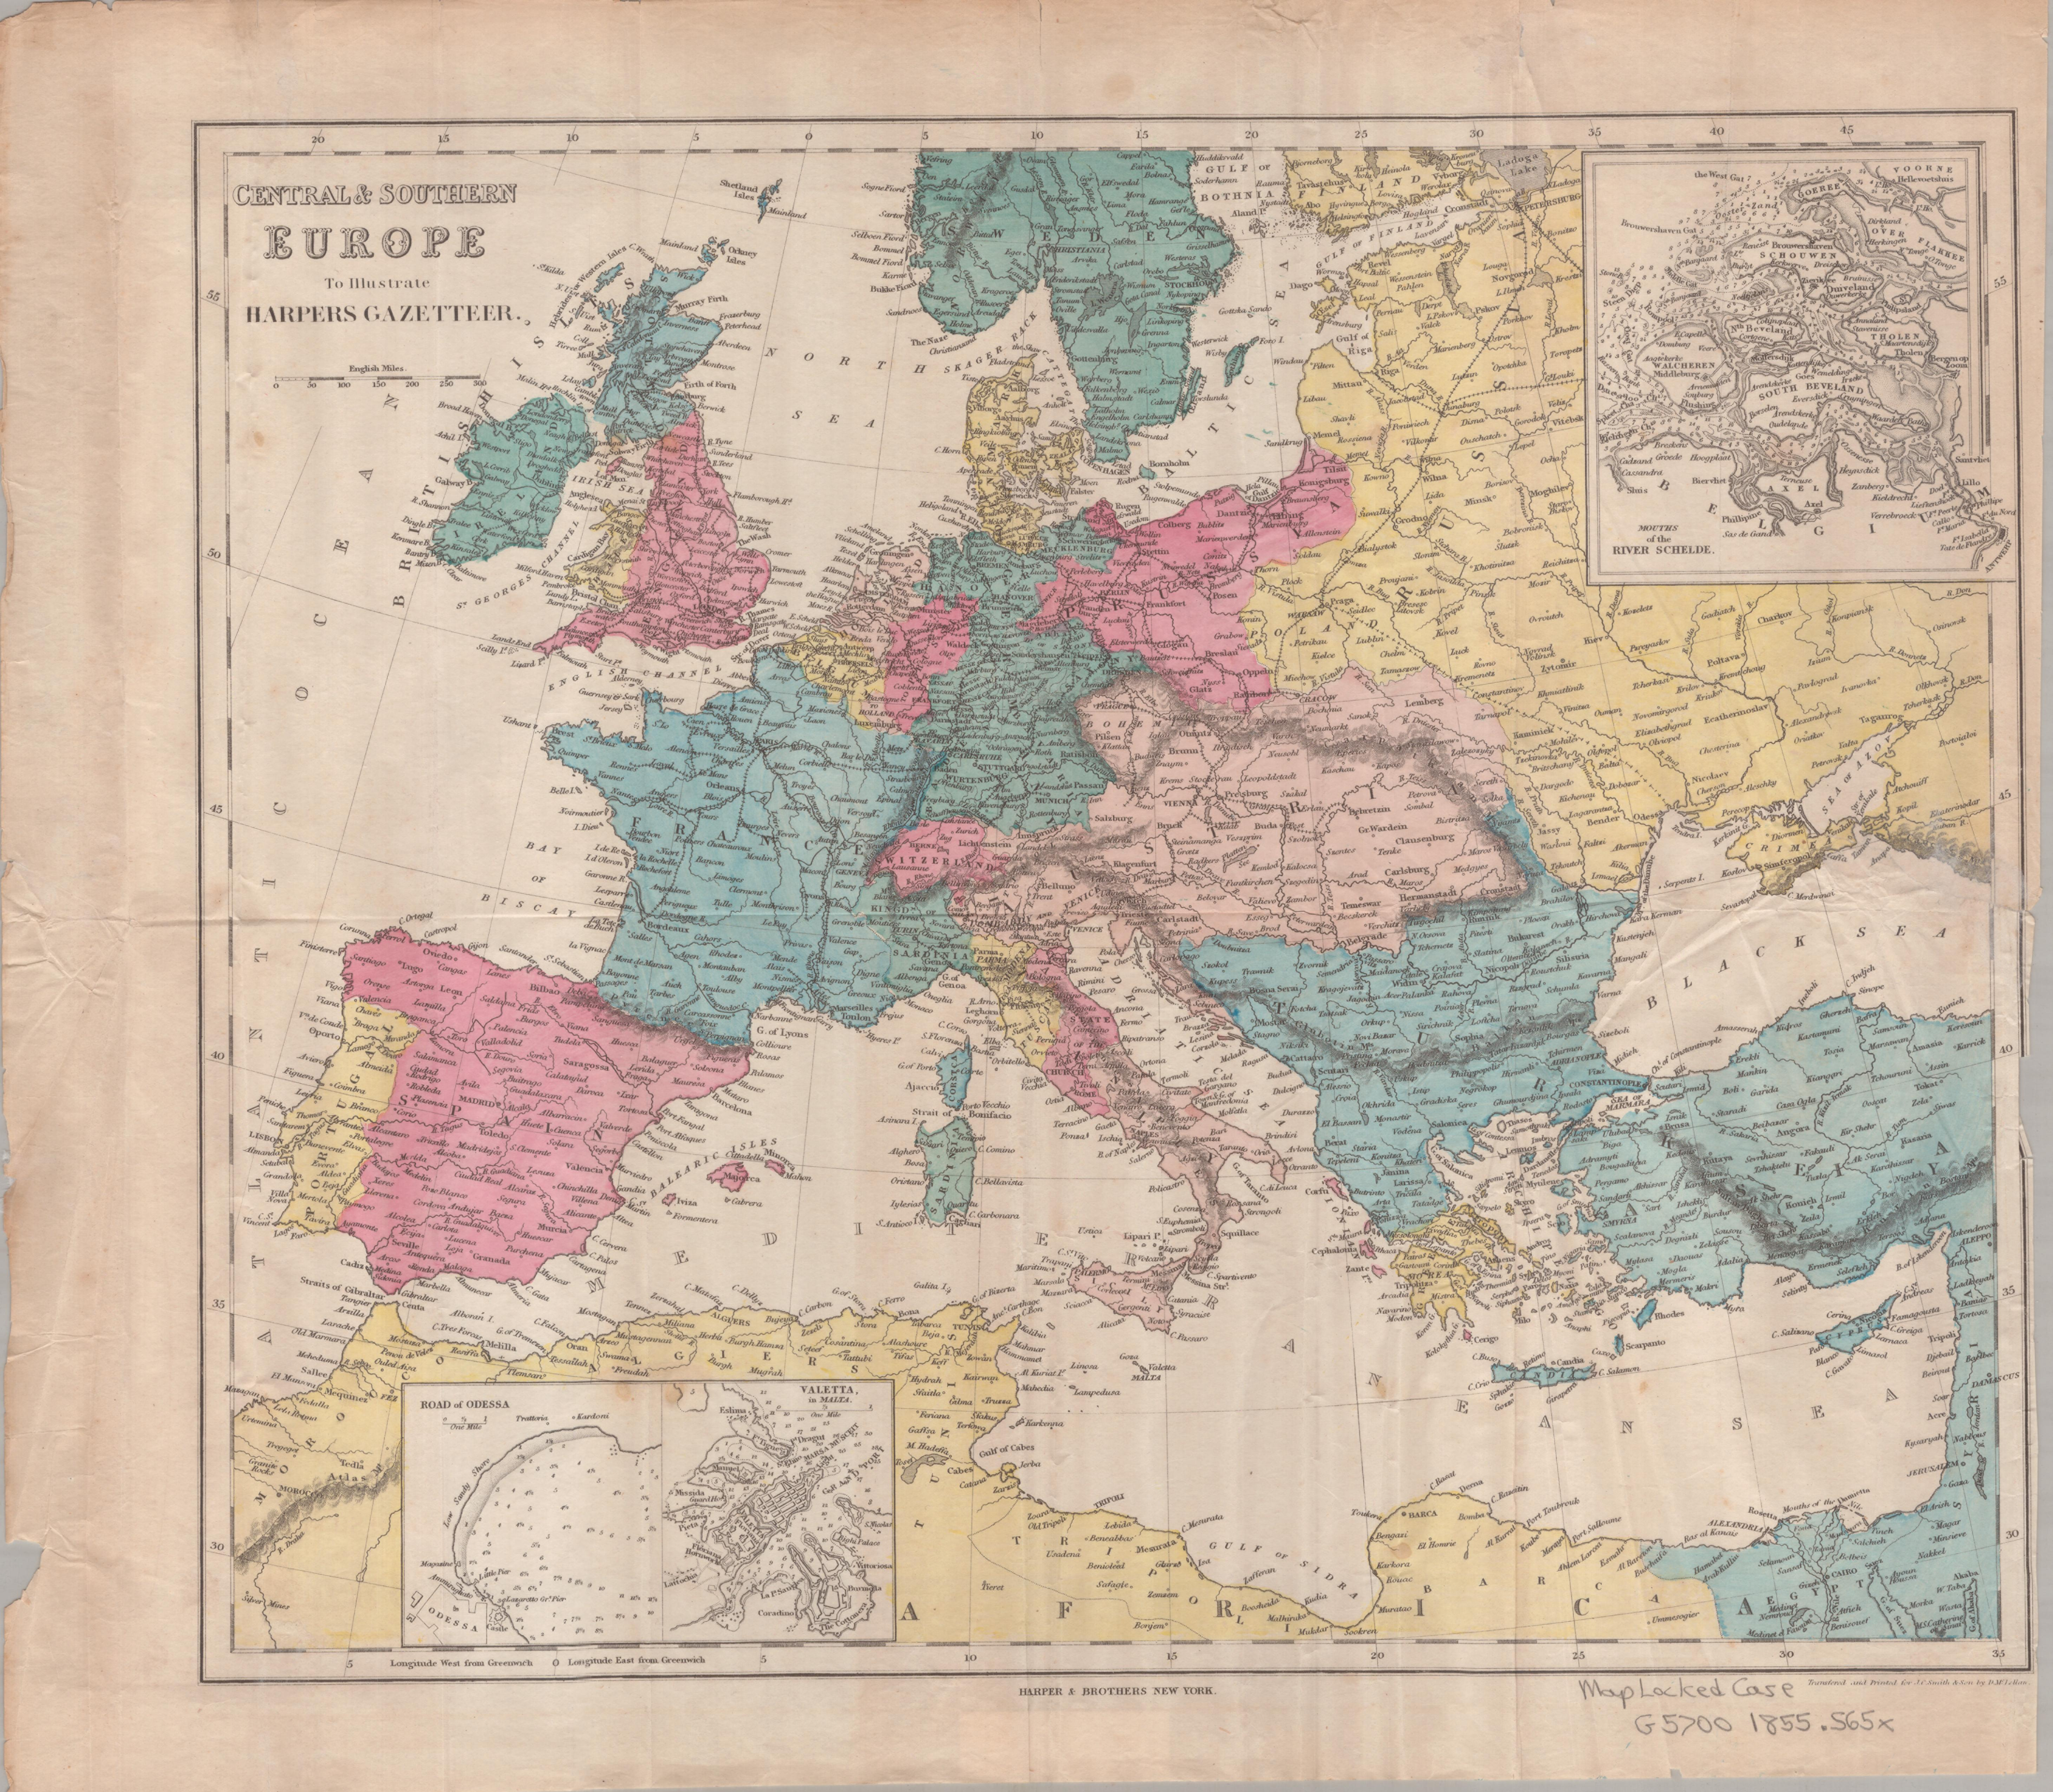 File:Central and Southern Europe Map 1855.jpg - Wikimedia ...